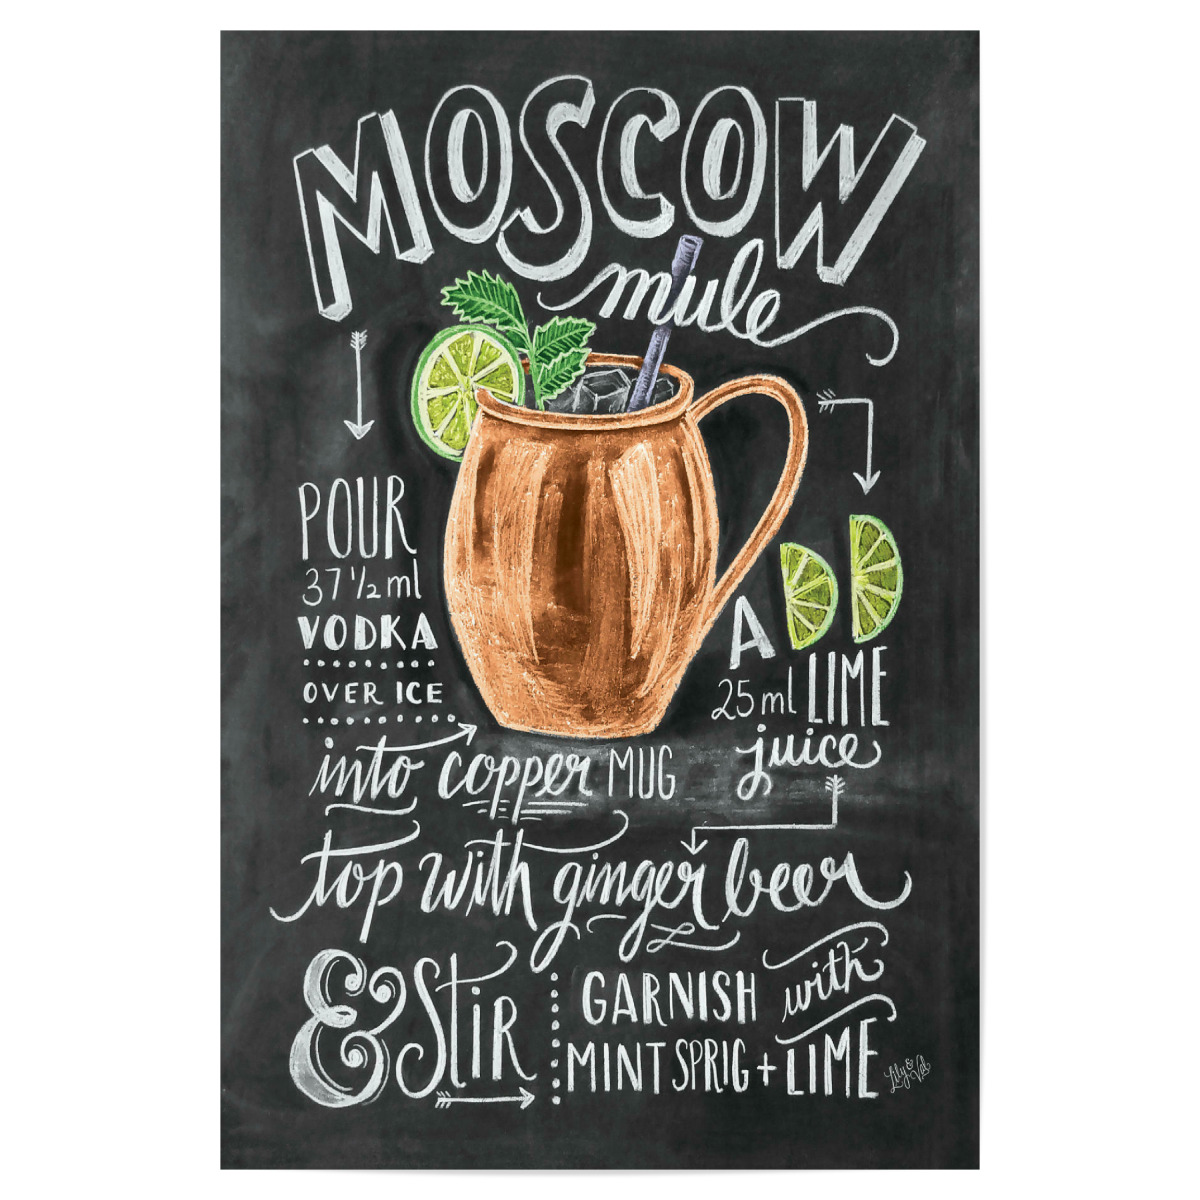 Moscow Mule als Poster bei artboxONE kaufen